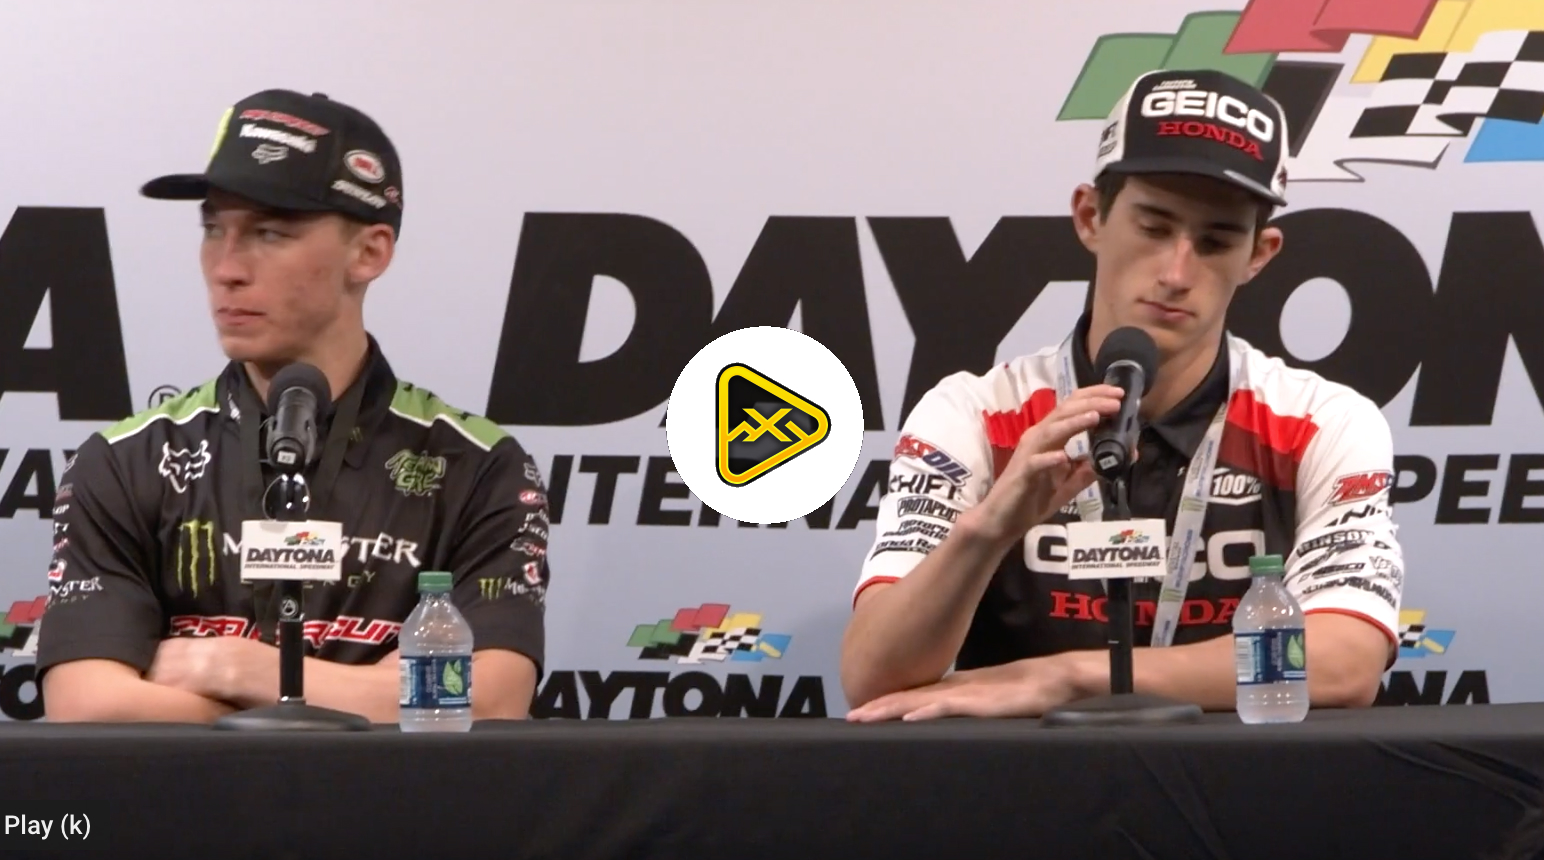 Post Race 250 Press Conference – Daytona SX